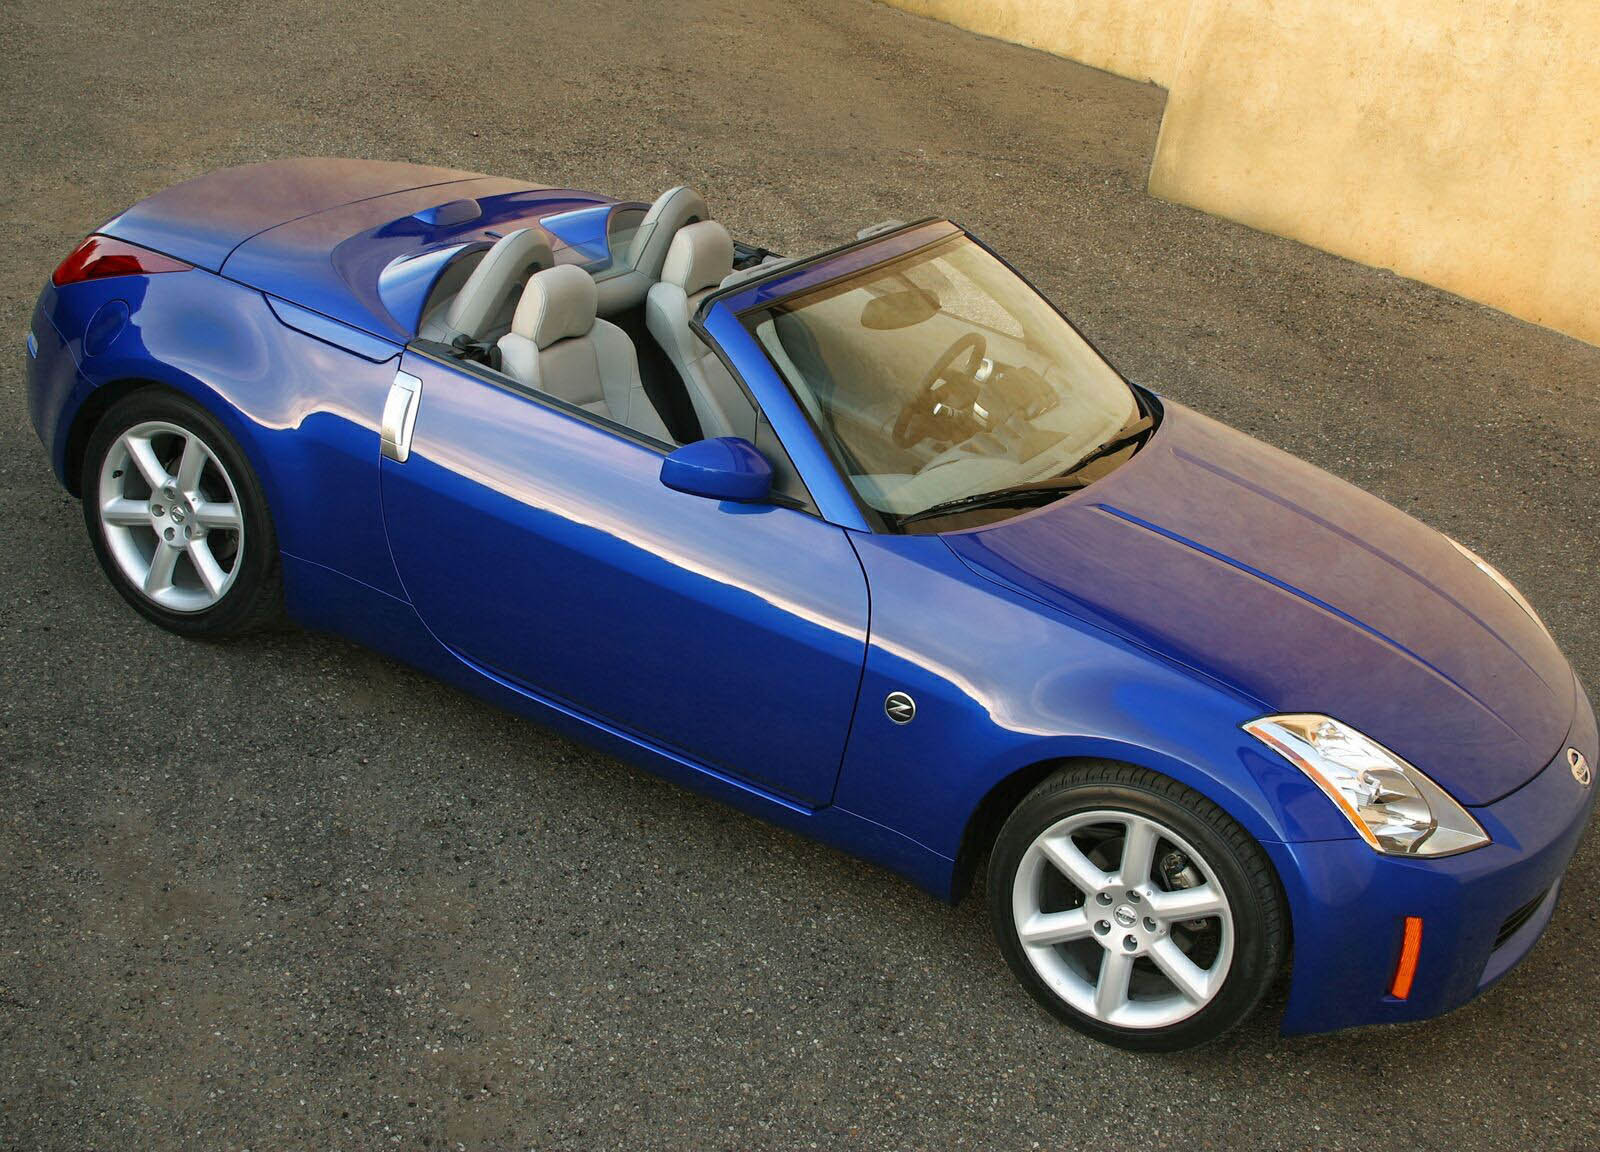 2004 Nissan 350Z Coupe >> 2004 Nissan 350z Convertible Review - Top Speed